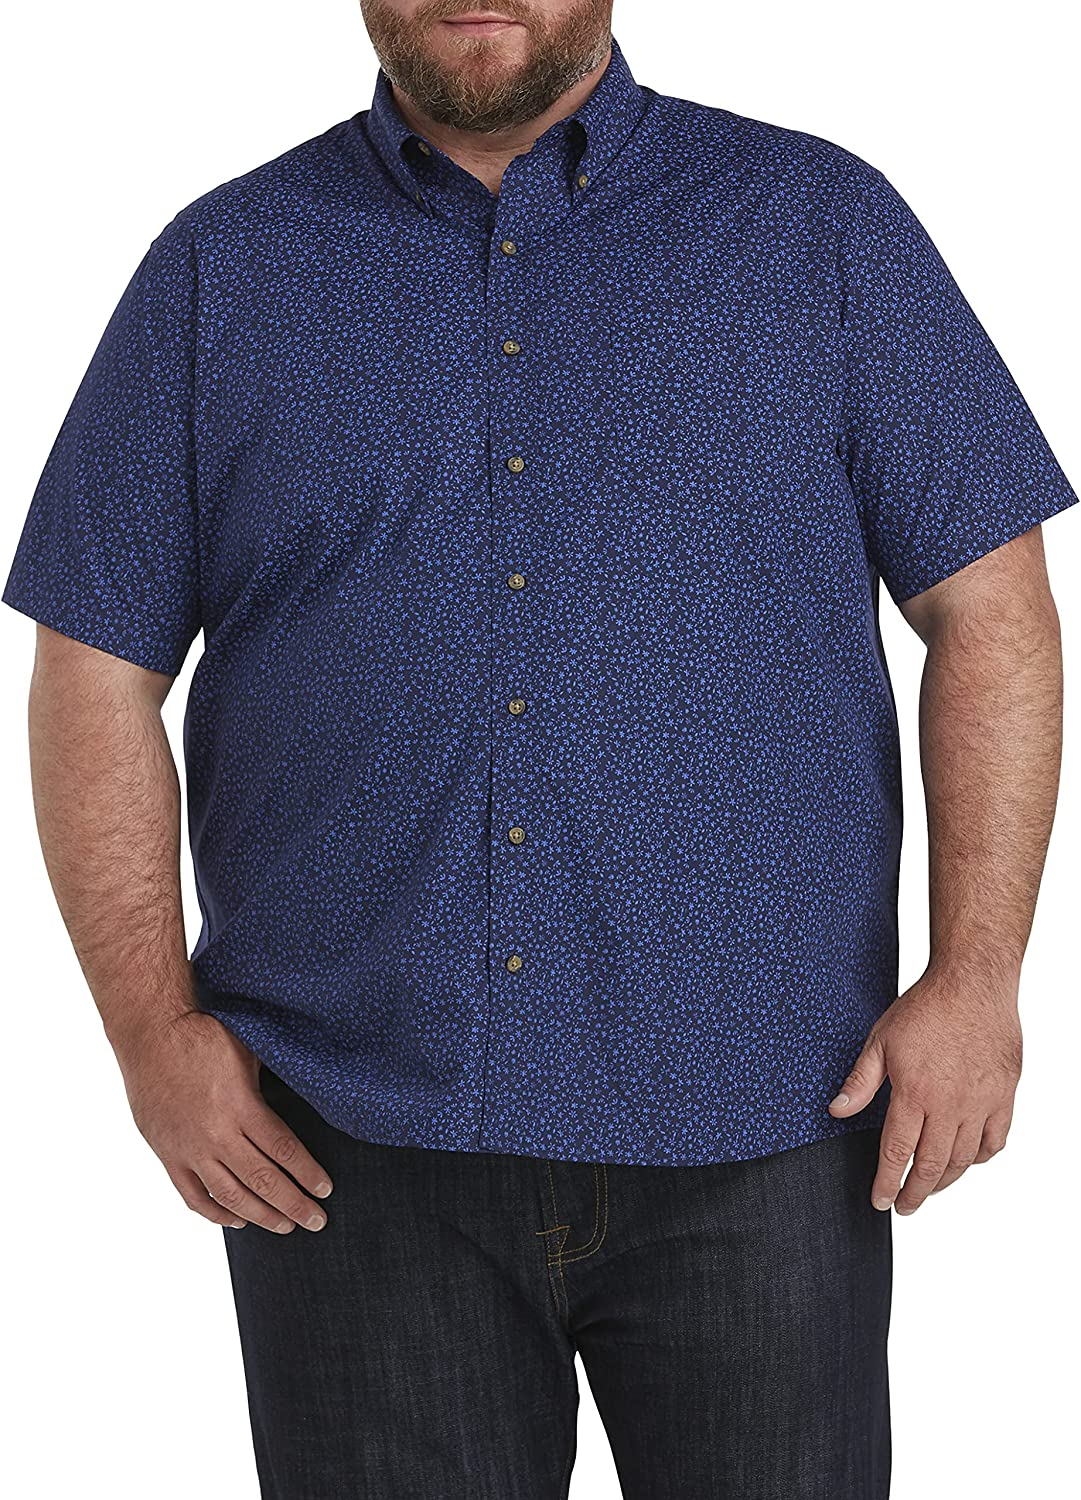 Harbor Bay by DXL Big and Tall Easy-Care Floral Print Sport Shirt